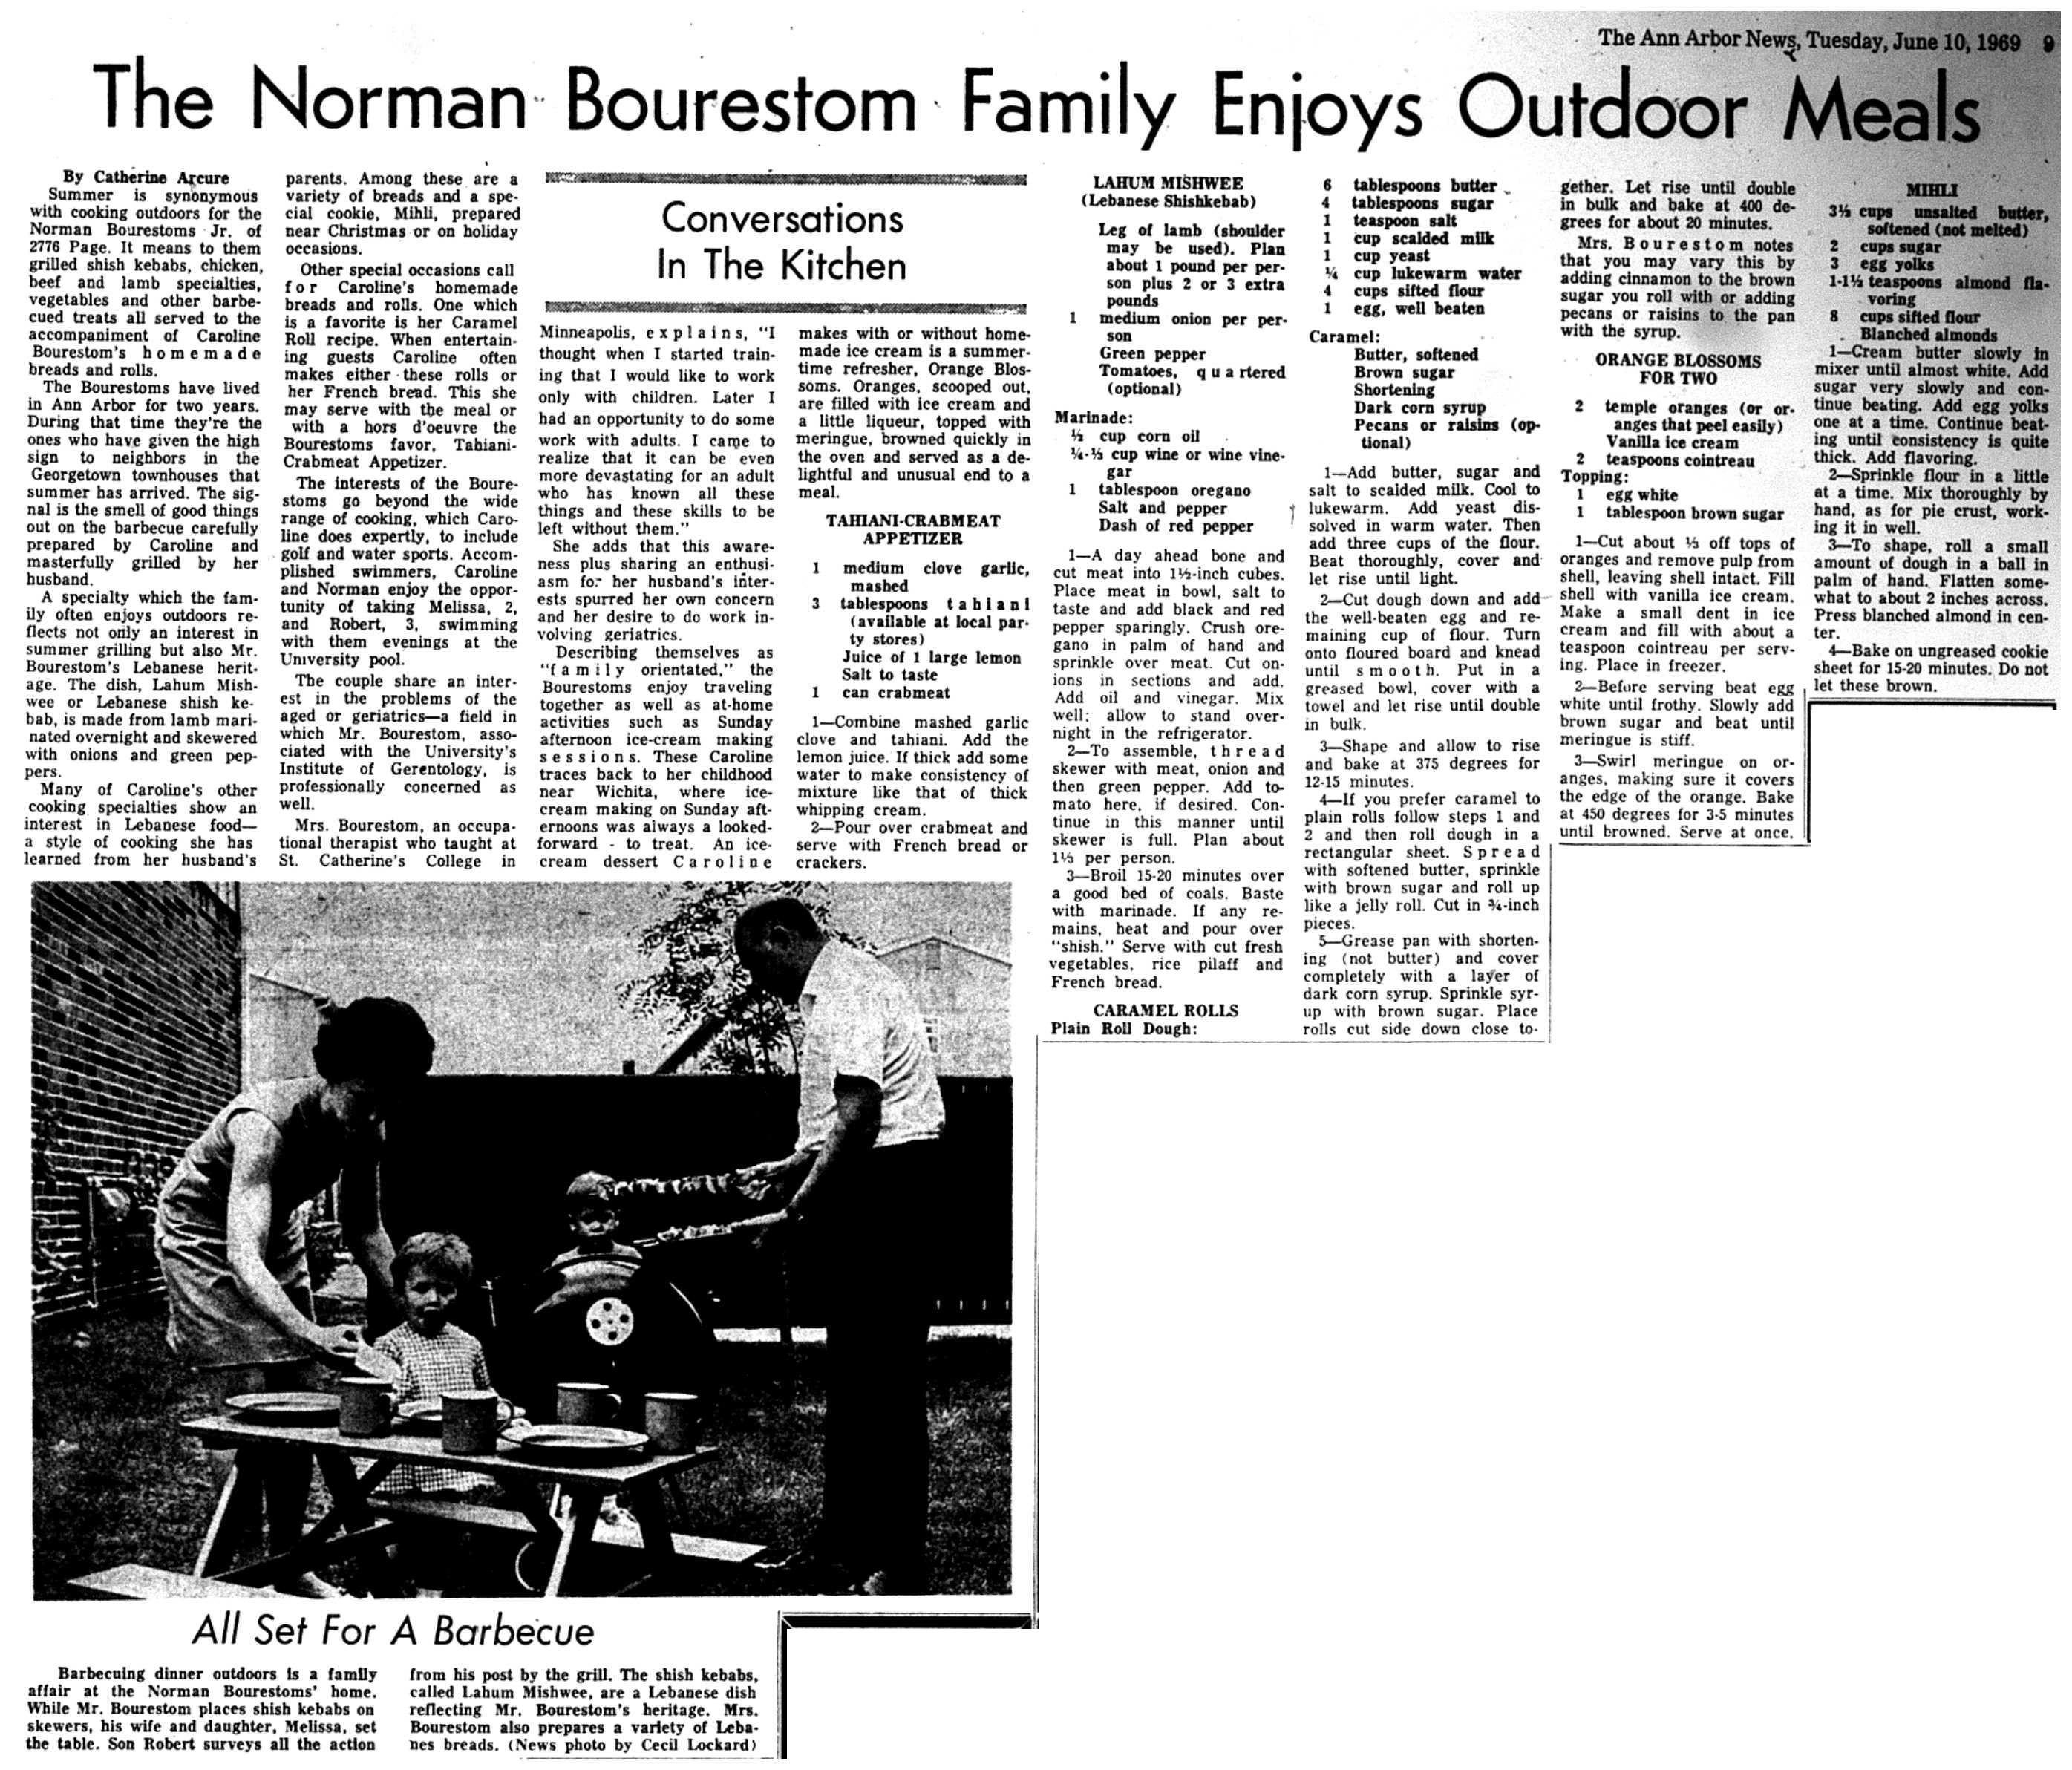 The Norman Bourestom Family Enjoys Outdoor Meals image